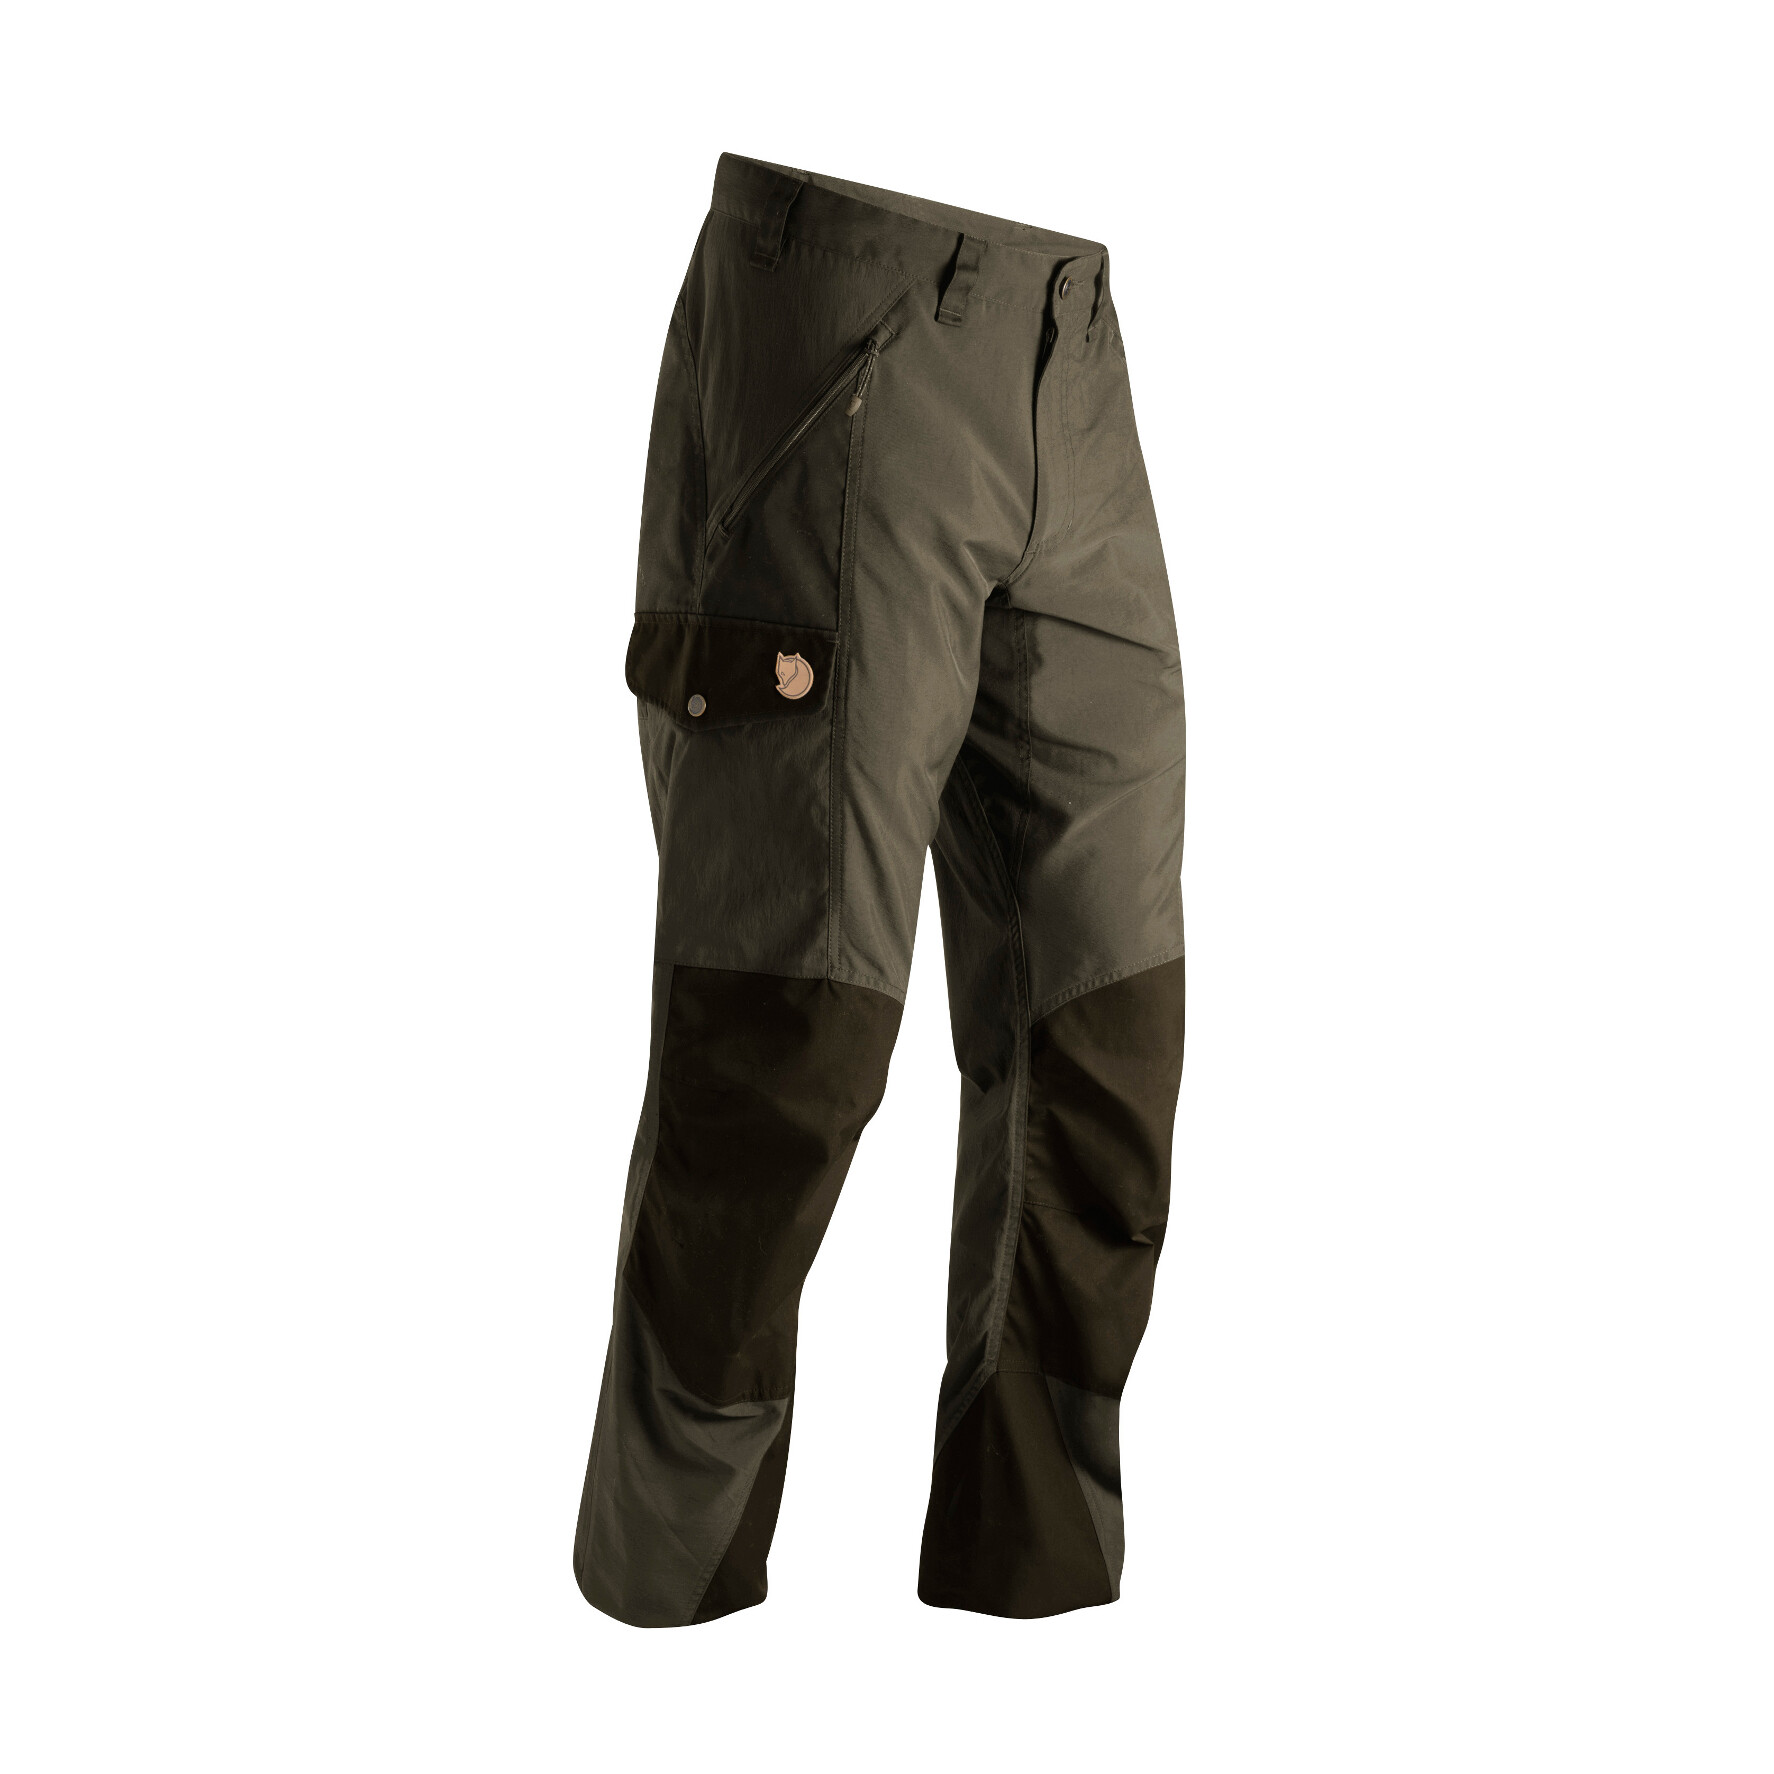 Fjällräven Abisko Trousers Men's